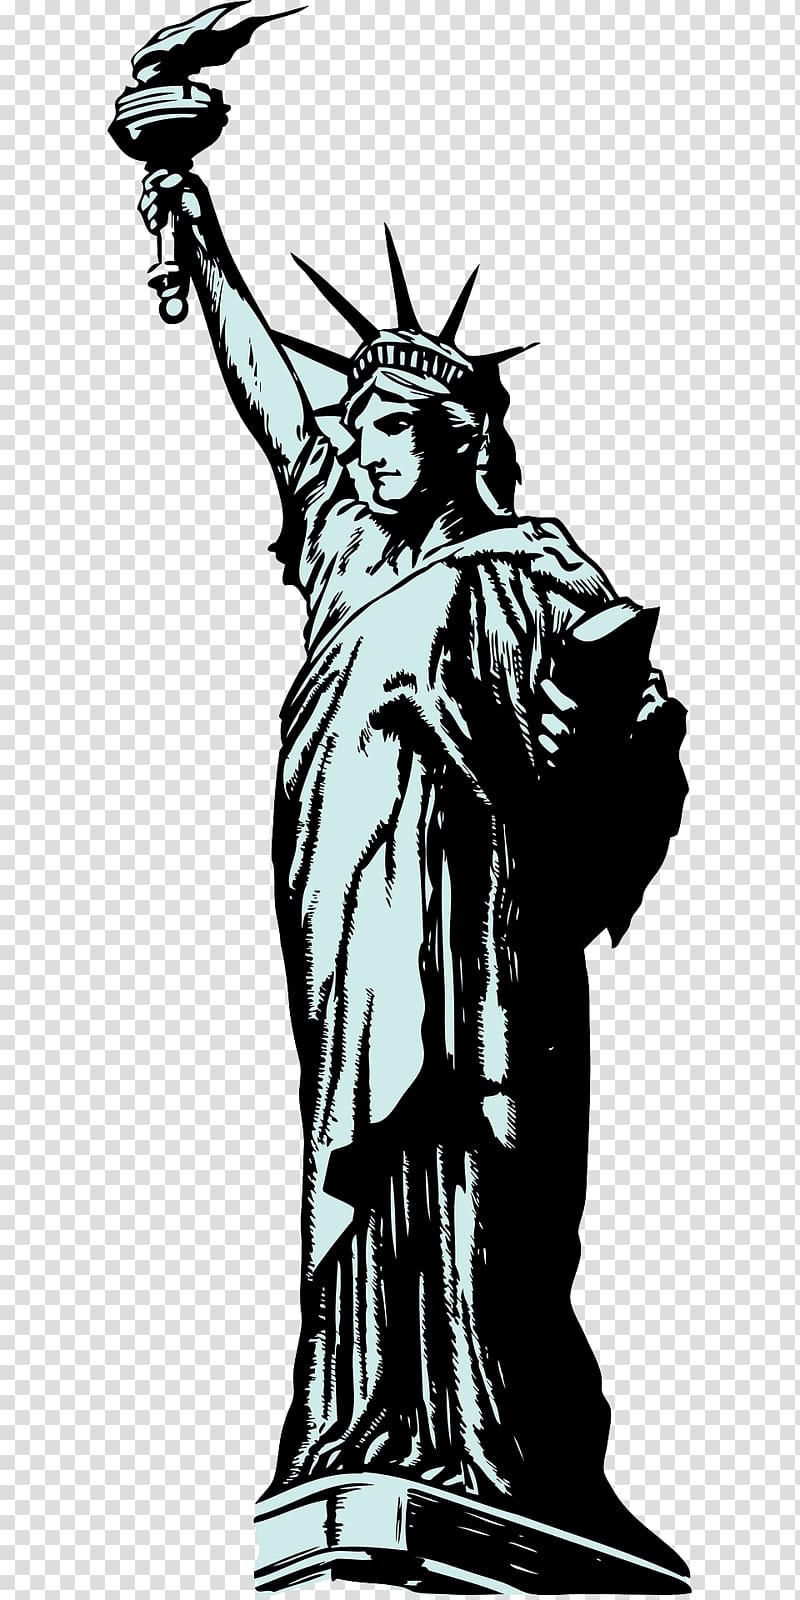 Statue of Liberty , The torch of the goddess transparent.